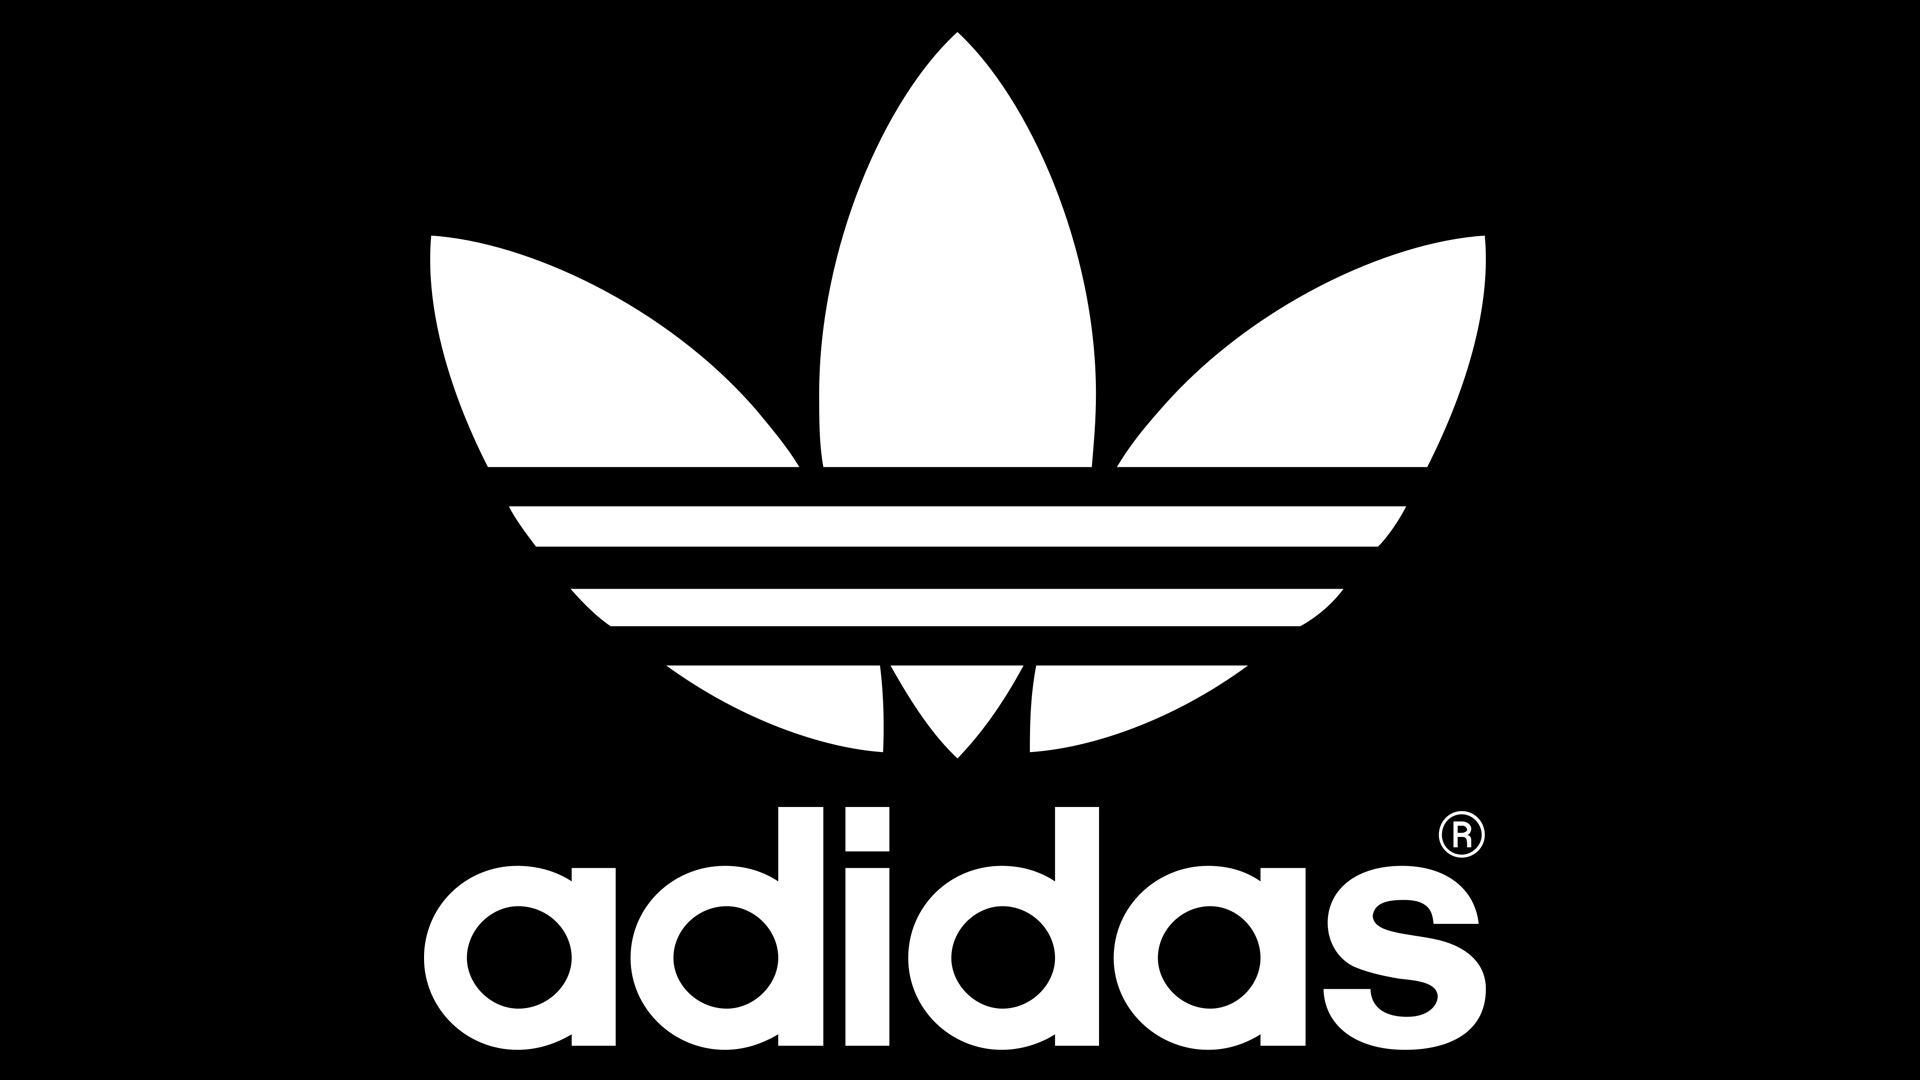 Adidas Logo - Adidas Logo, Adidas Symbol Meaning, History and Evolution